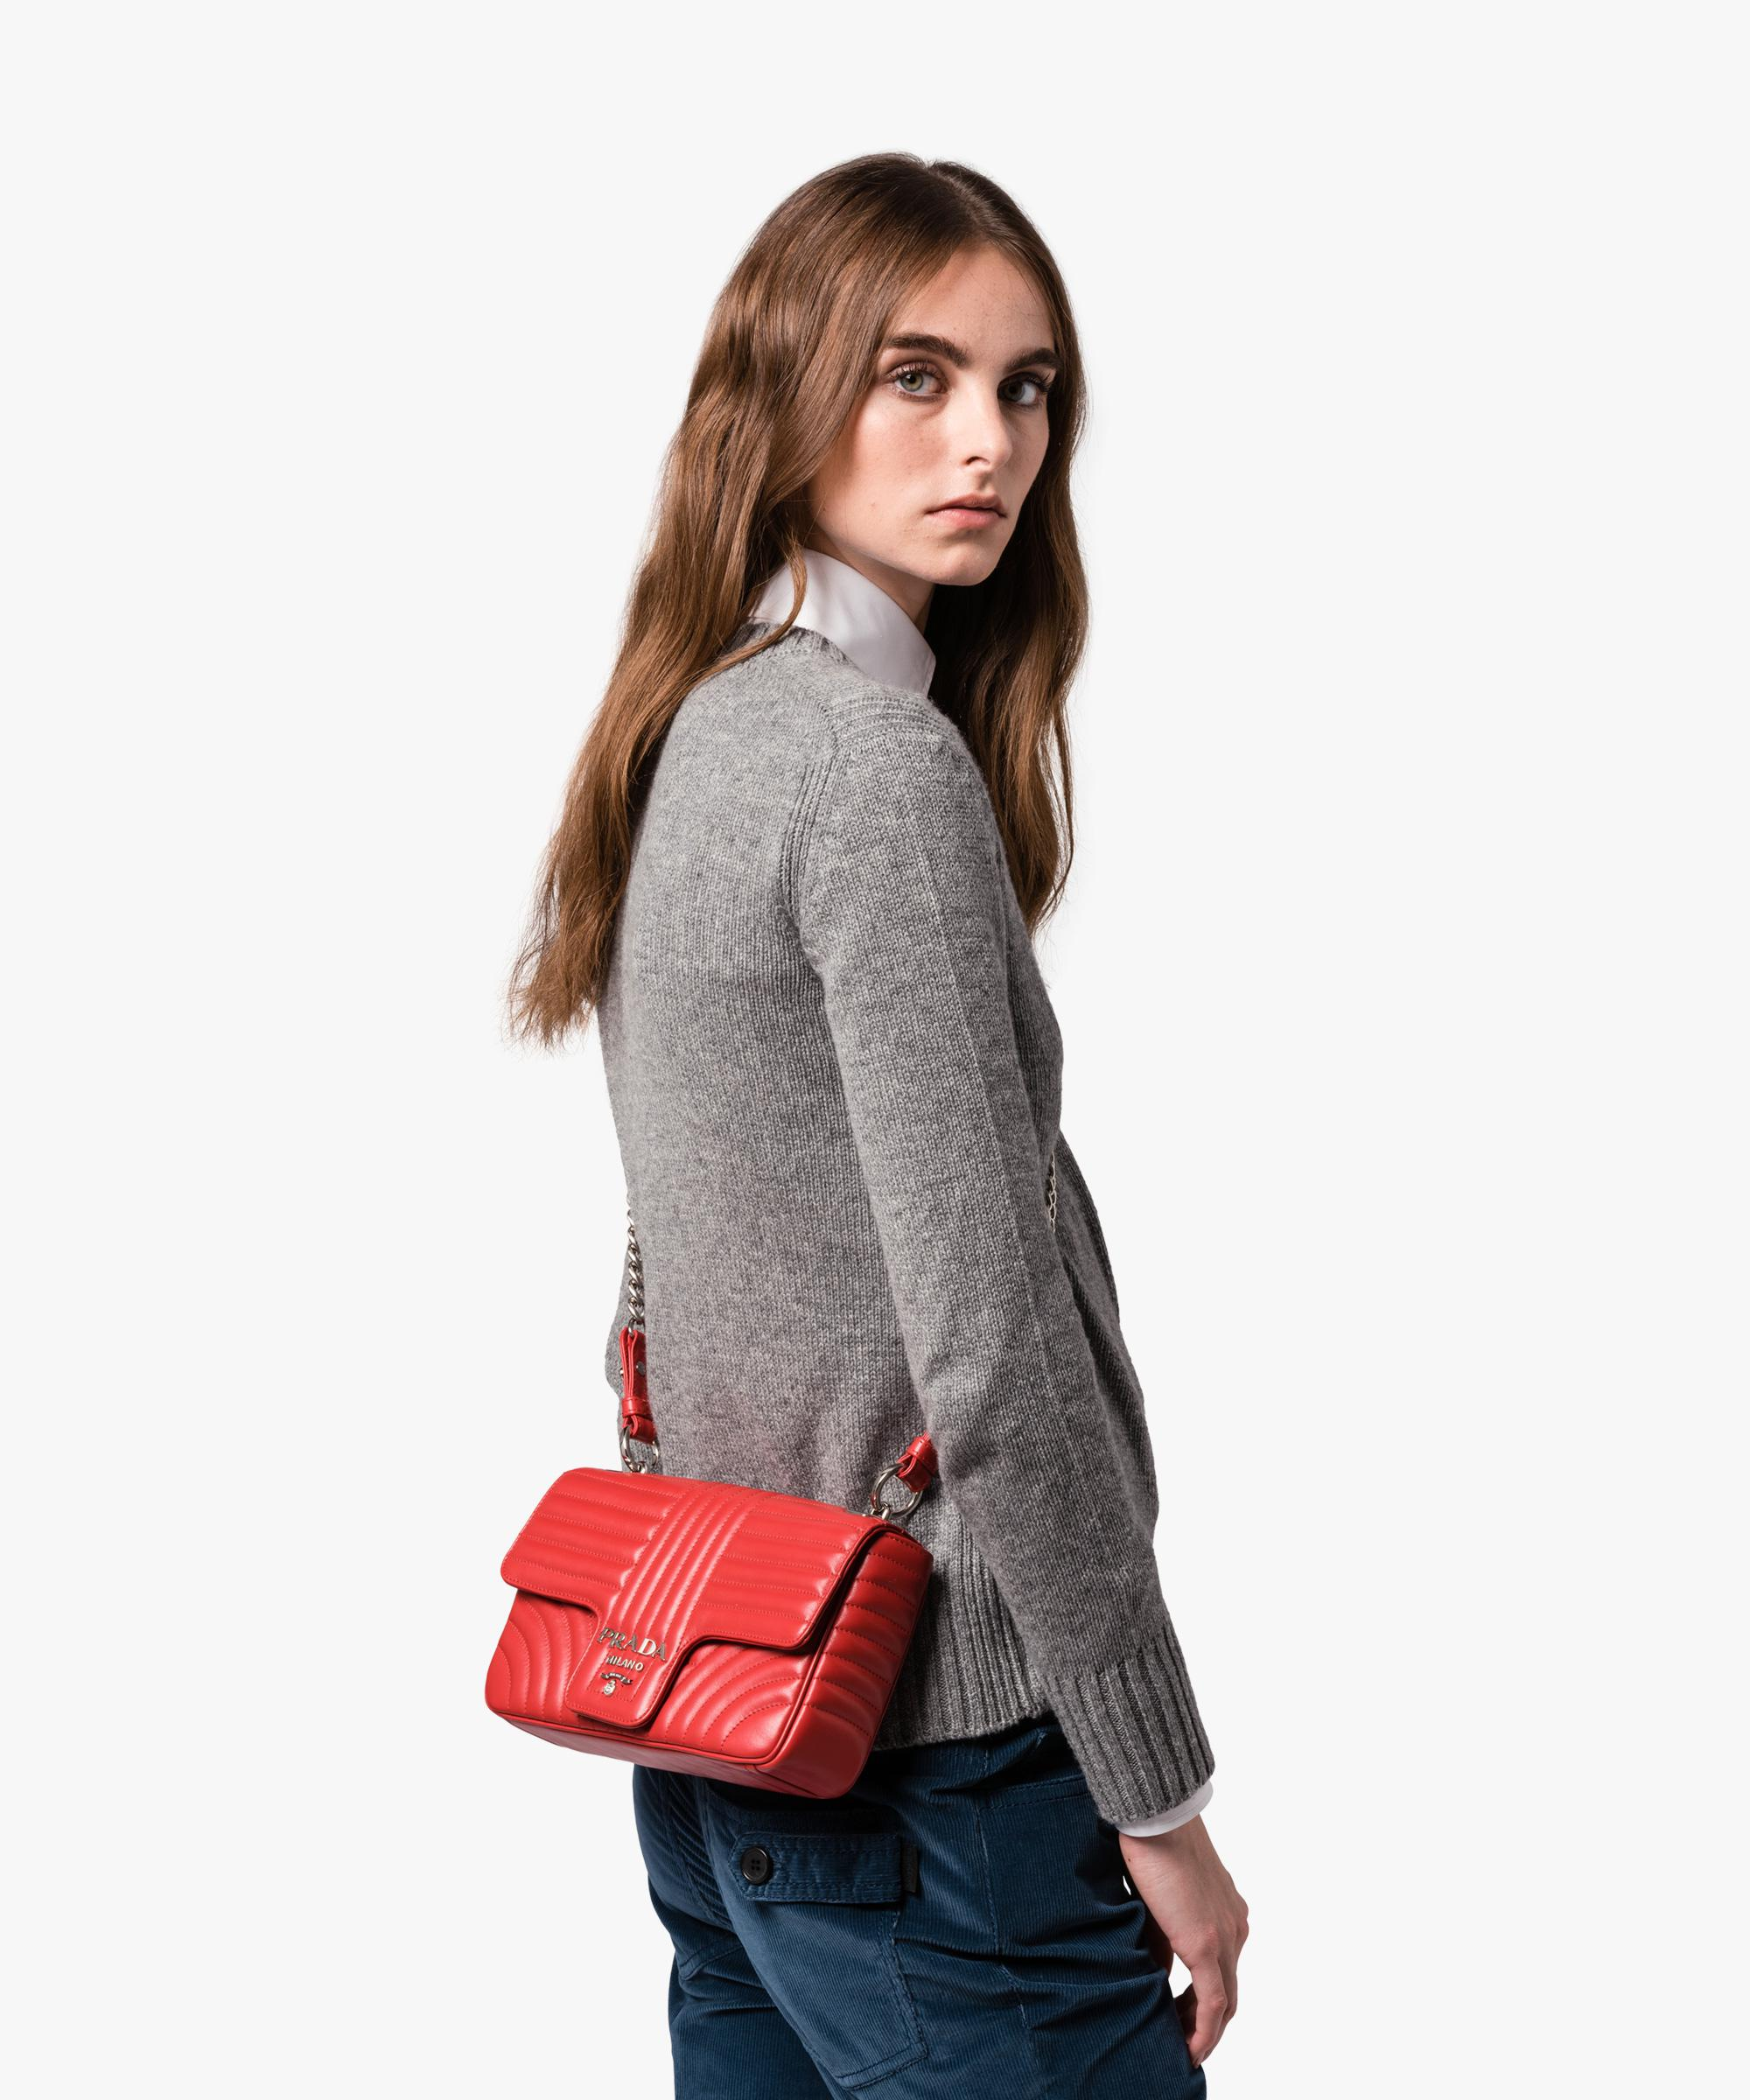 e2f8c0a90b Lyst - Prada Diagramme Leather Shoulder Bag in Red